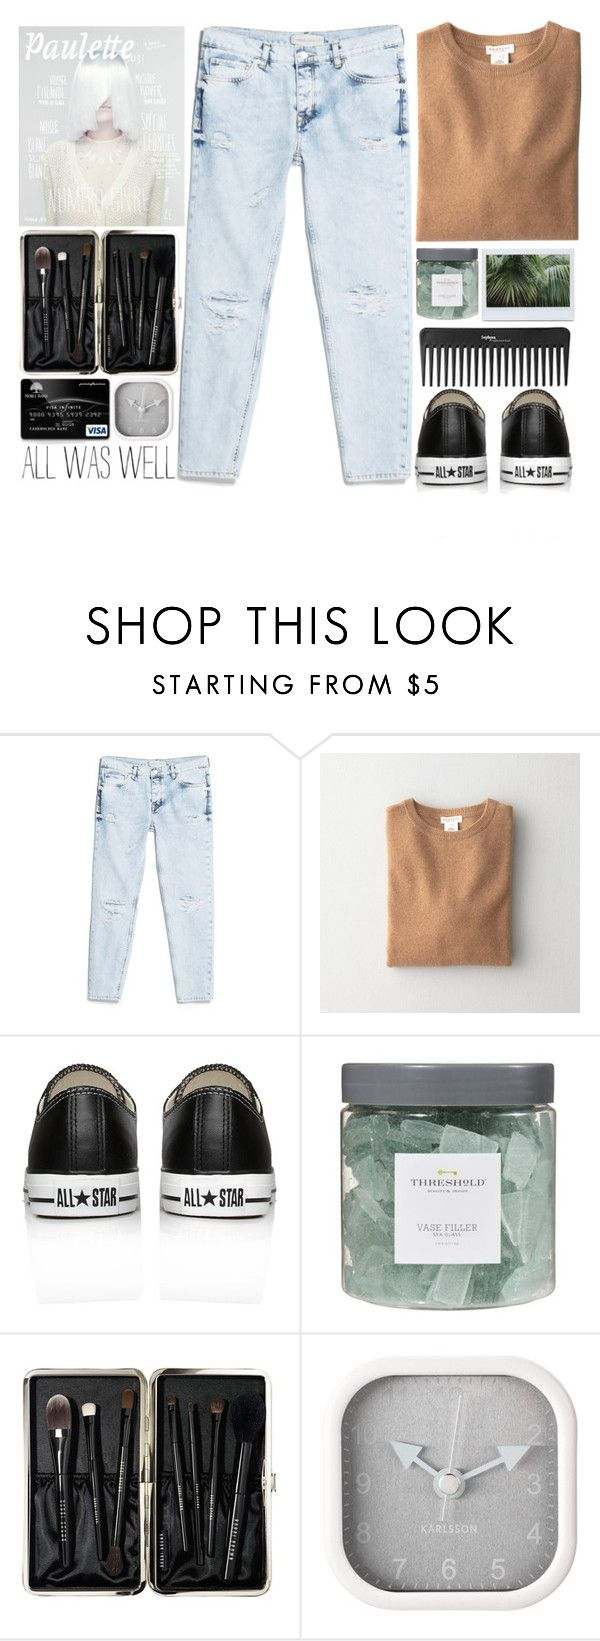 """""""#208 Rainy summer day"""" by mia5056 ❤ liked on Polyvore featuring Sephora Collection, MANGO, Demylee, Converse, Threshold, Bobbi Brown Cosmetics and Karlsson"""